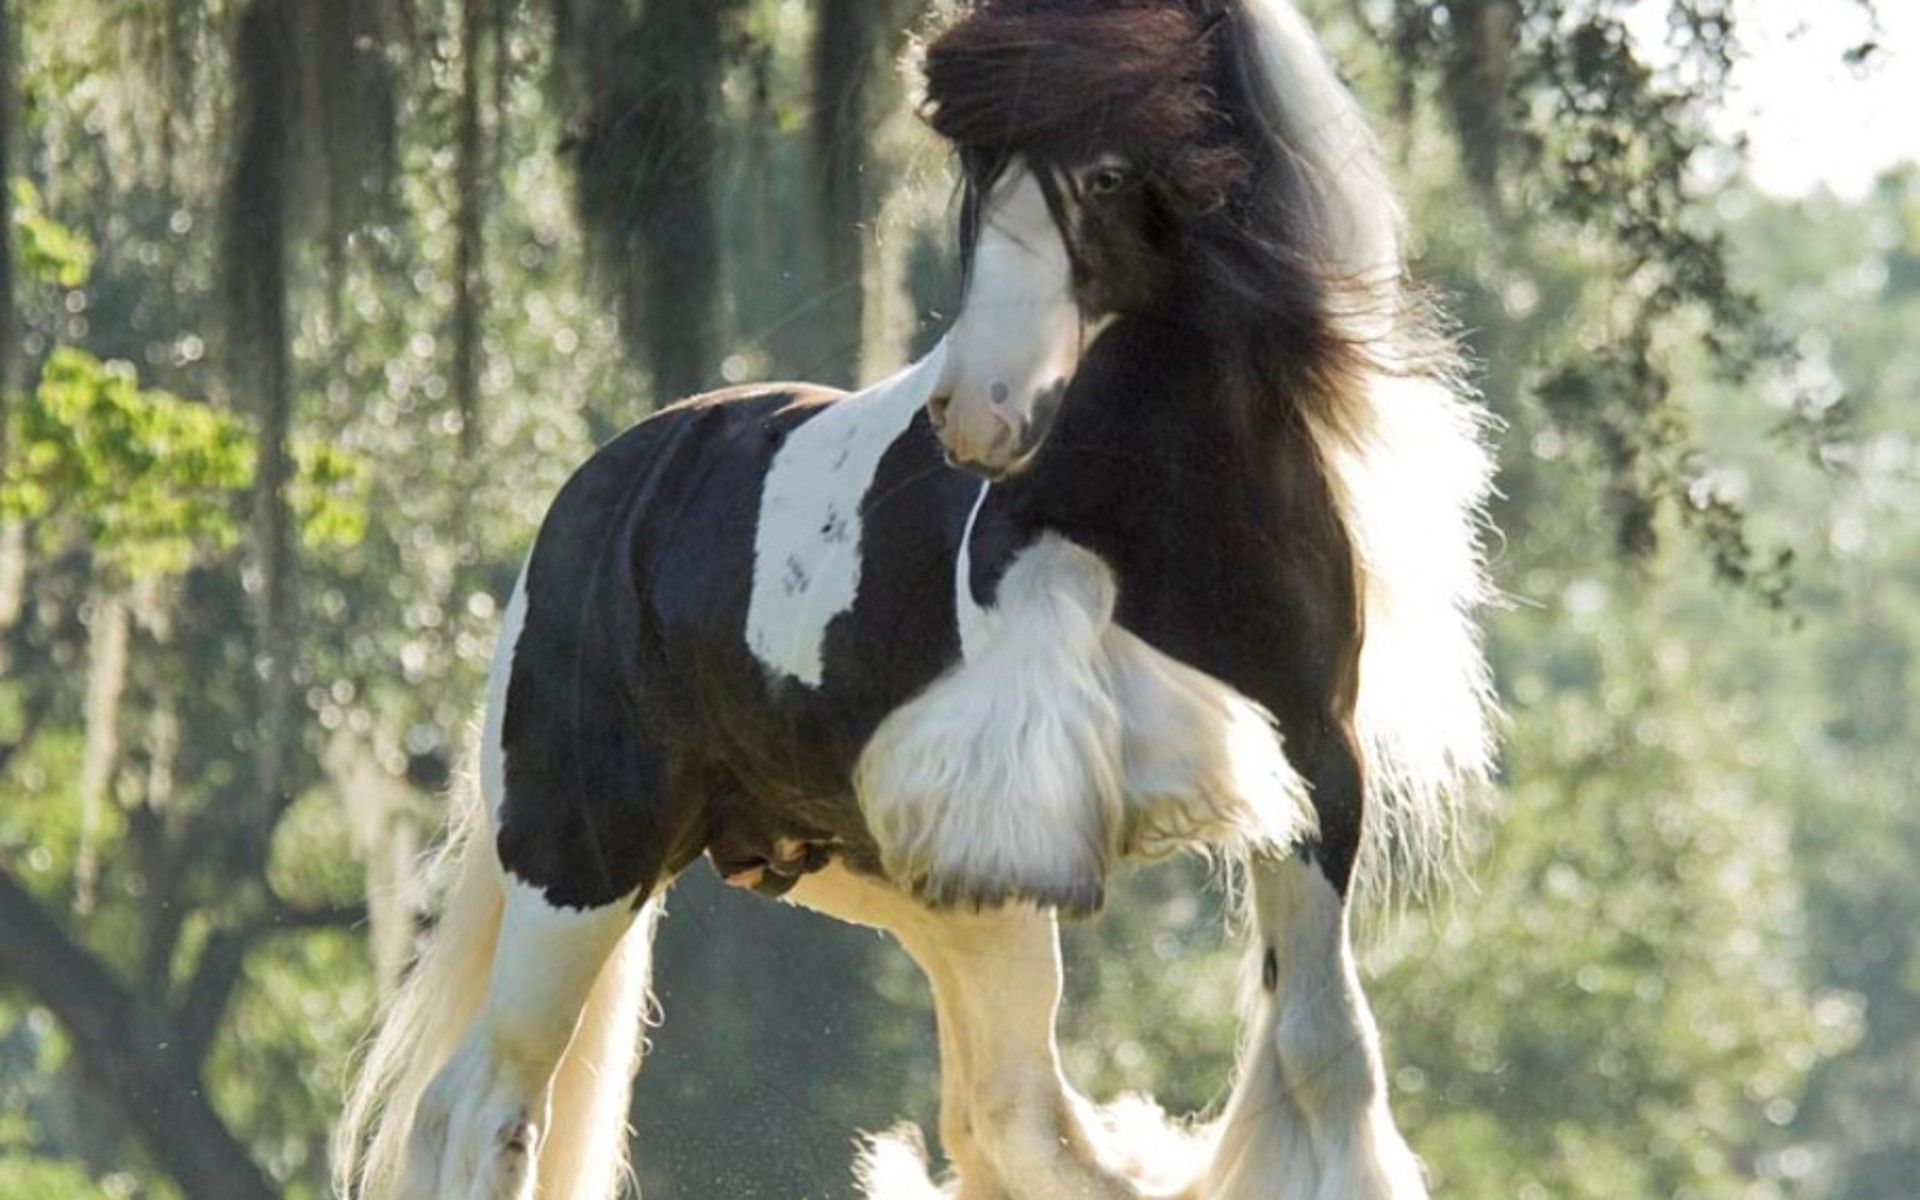 Cool Wallpaper Horse Tinker - 0c861957074fed2a7801f0540be96475  Pictures_142279.jpg